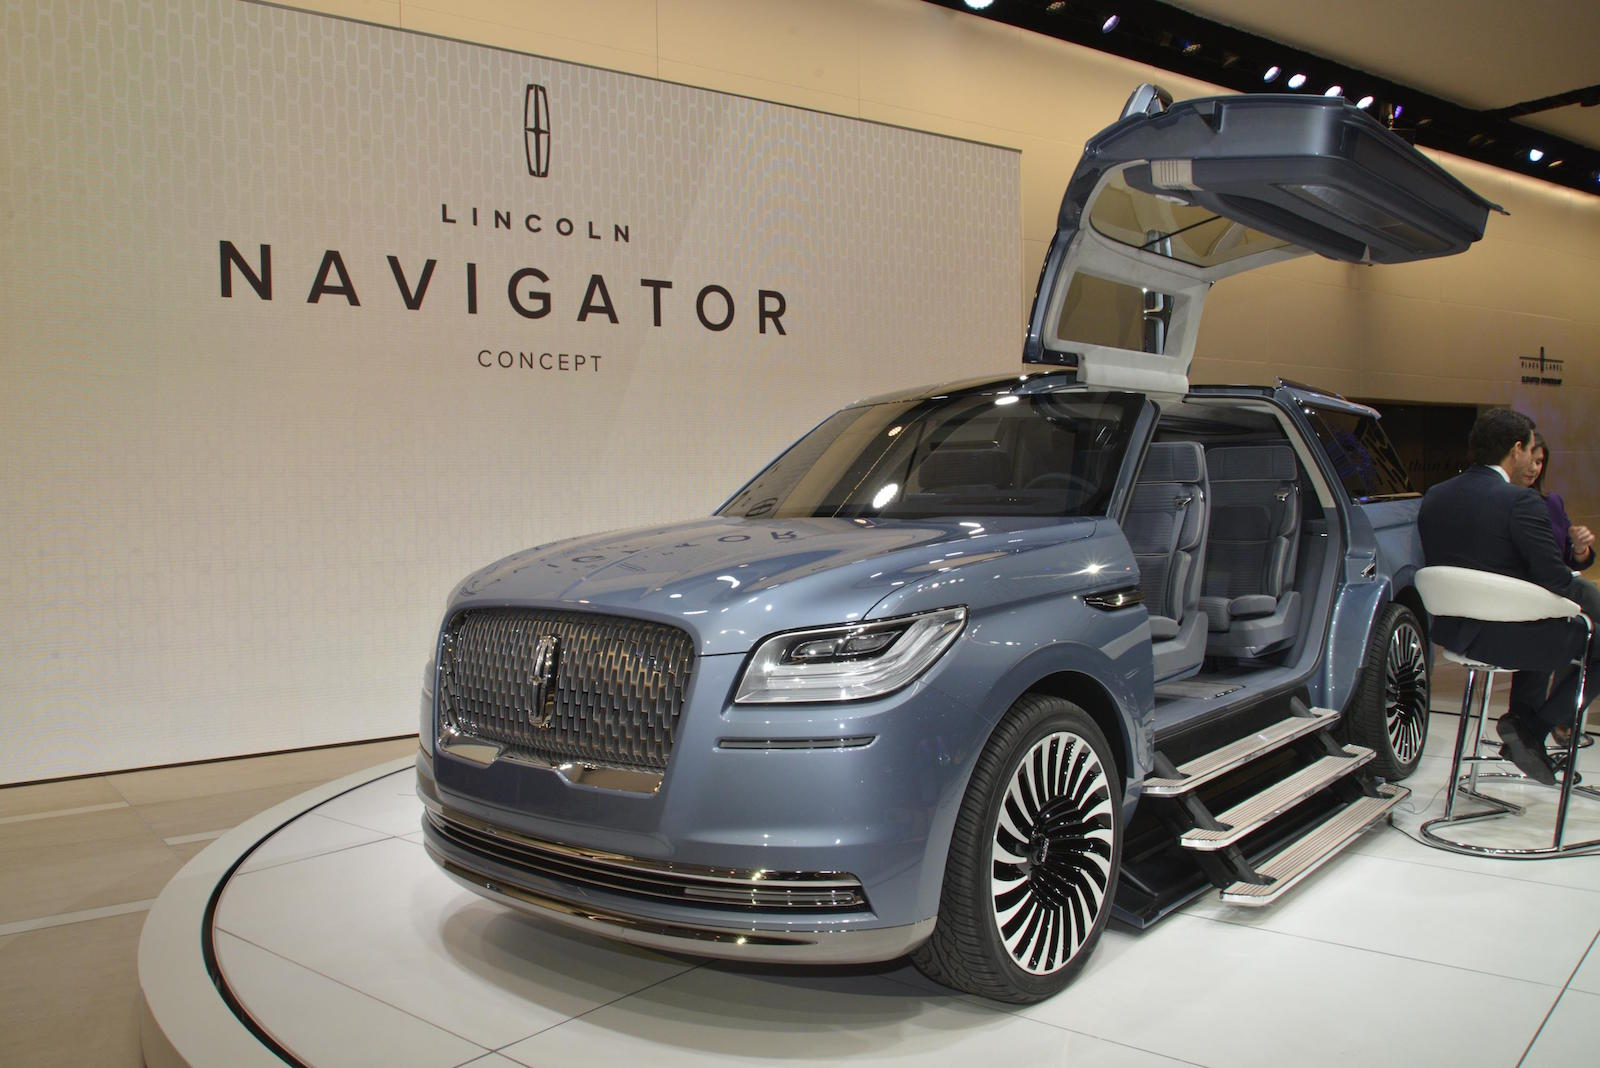 Lincoln Navigator Concept Previews More Luxurious Future